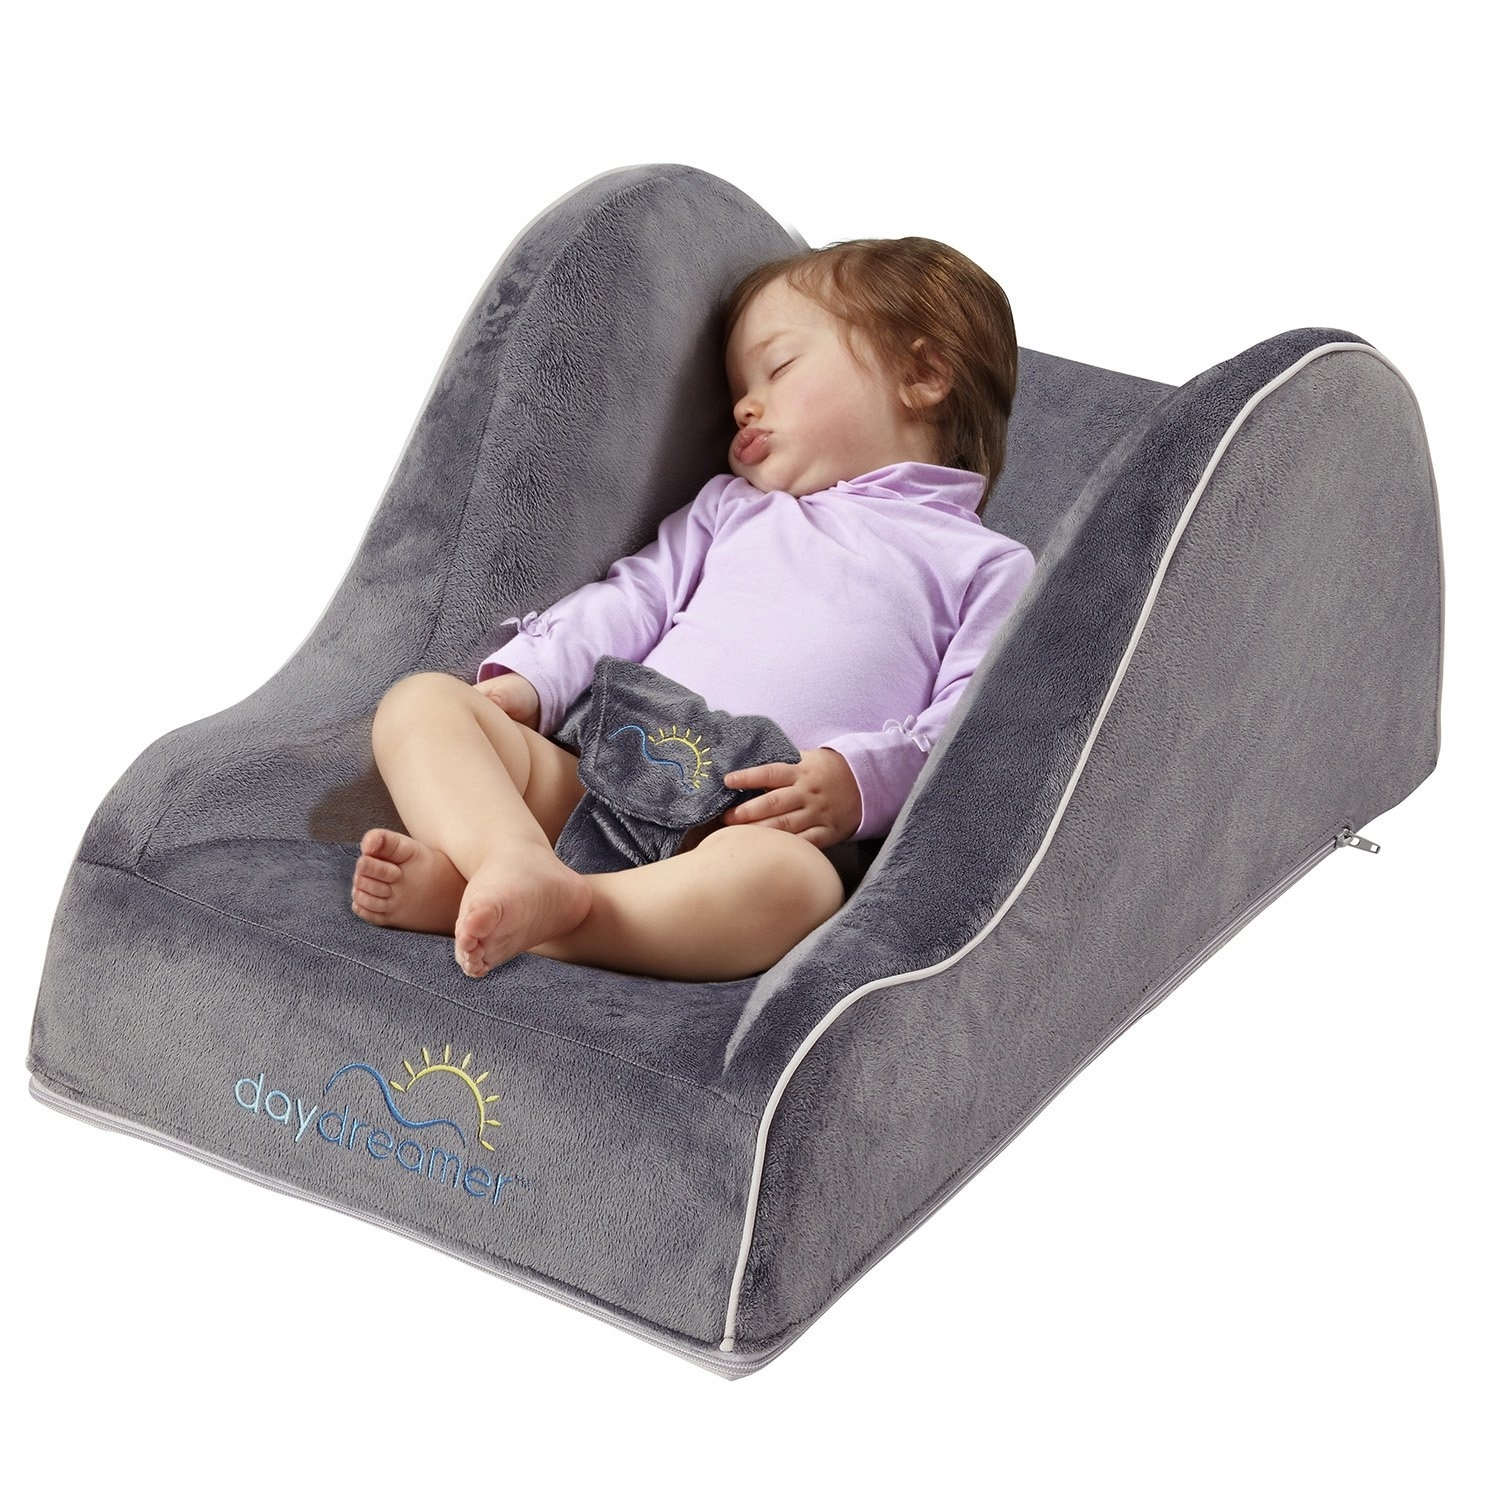 hiccapop Day Dreamer Sleeper Baby Lounger Seat for Infants Travel Bed by hiccapop